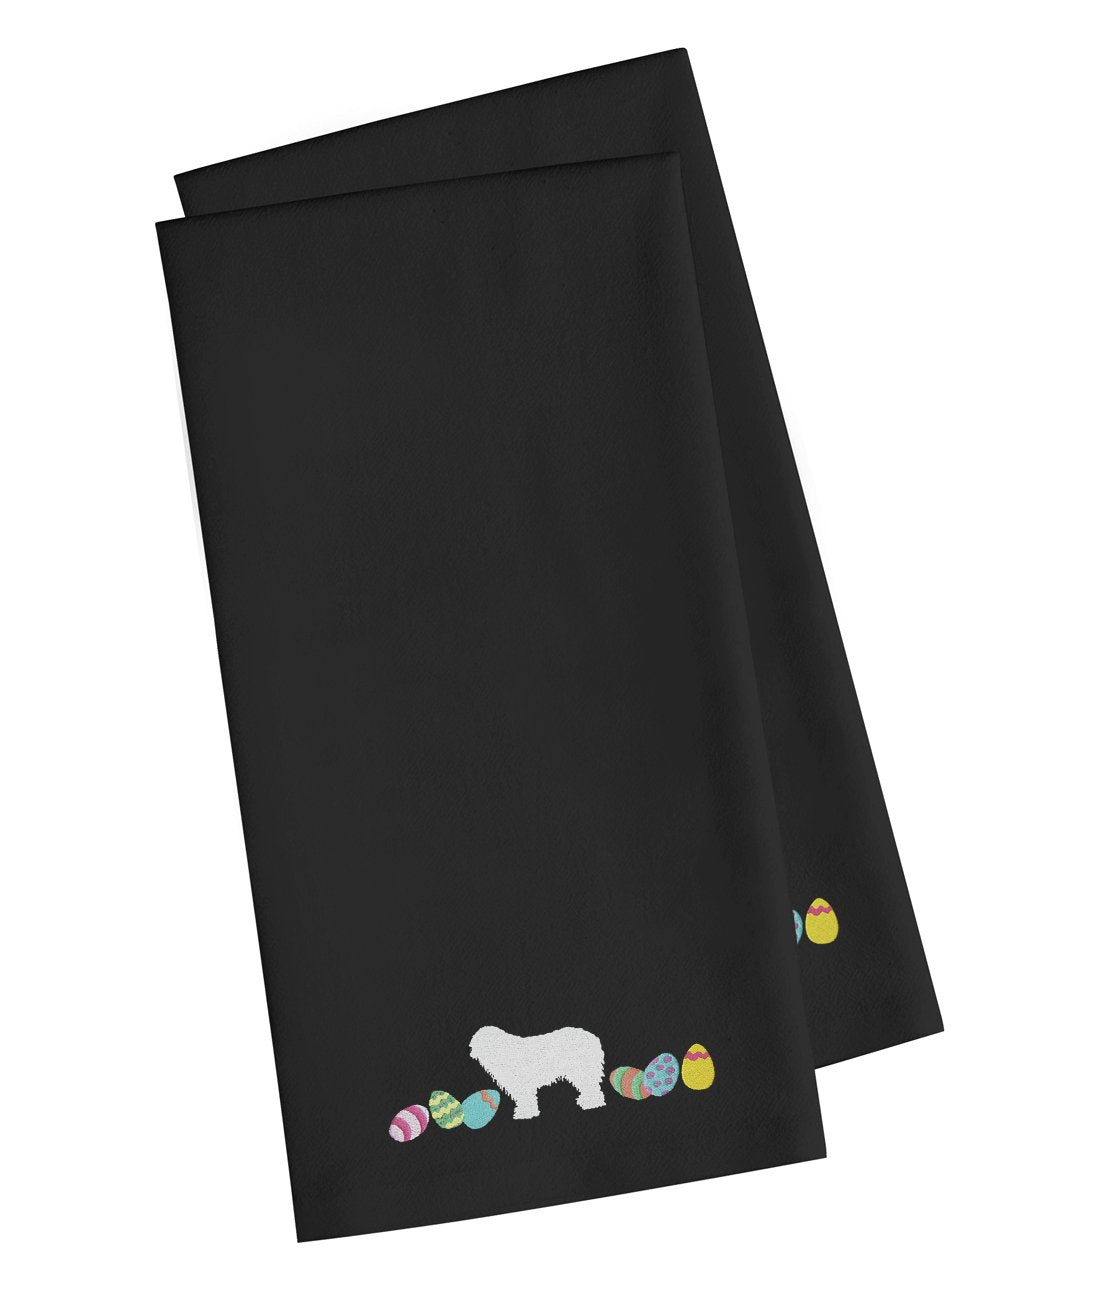 Komondor Easter Black Embroidered Kitchen Towel Set of 2 CK1660BKTWE by Caroline's Treasures